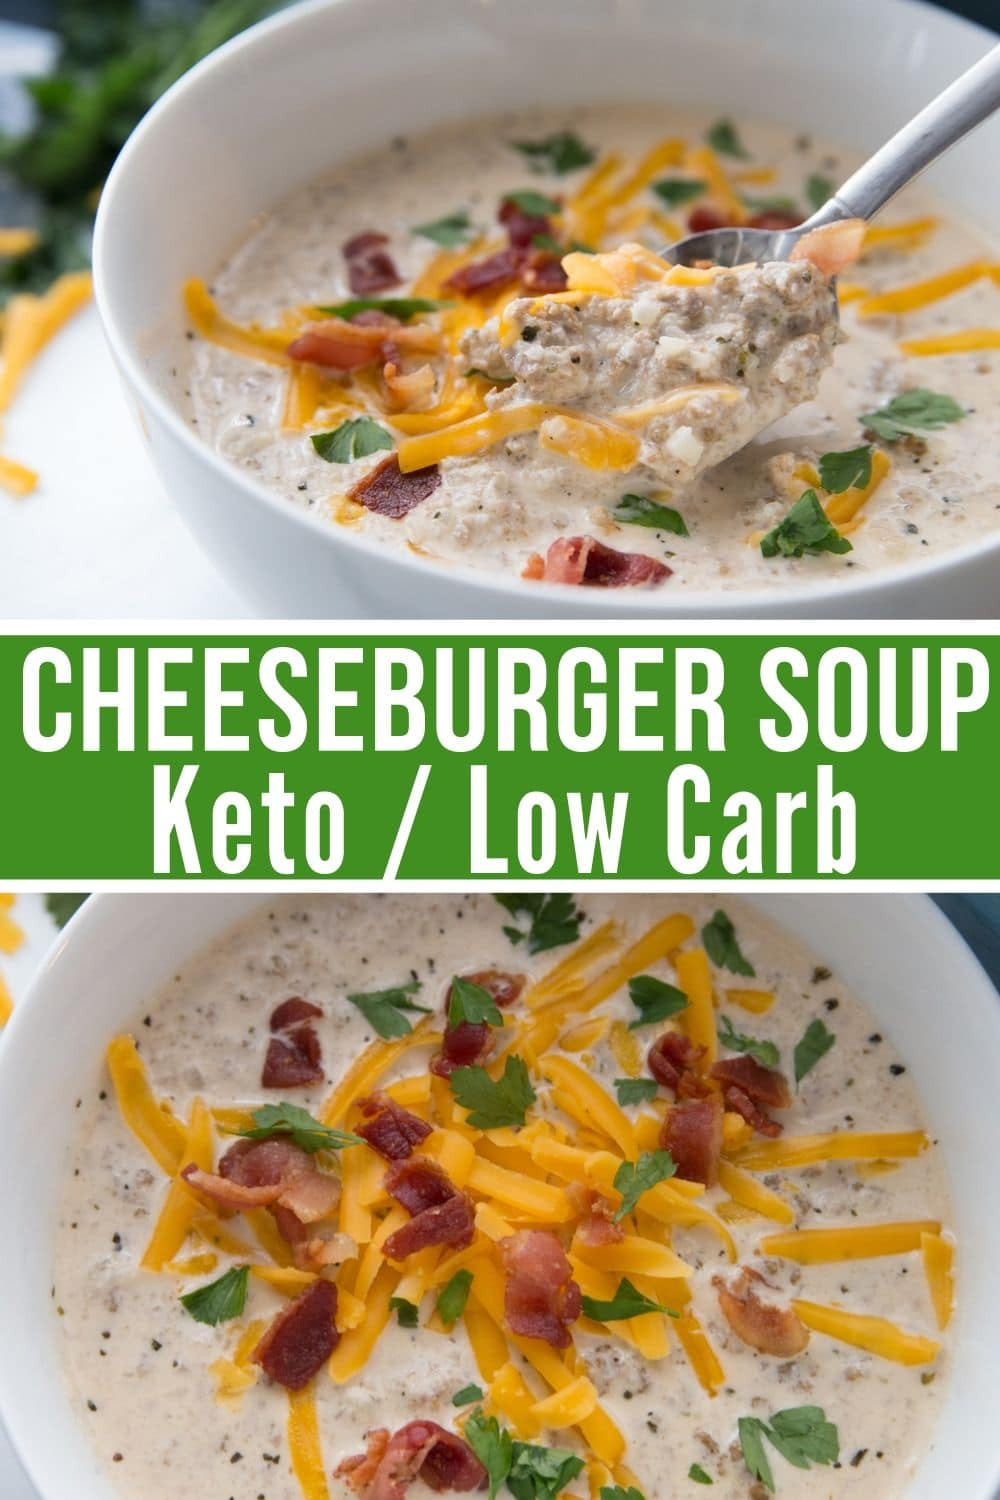 keto cheeseburger soup recipe collage